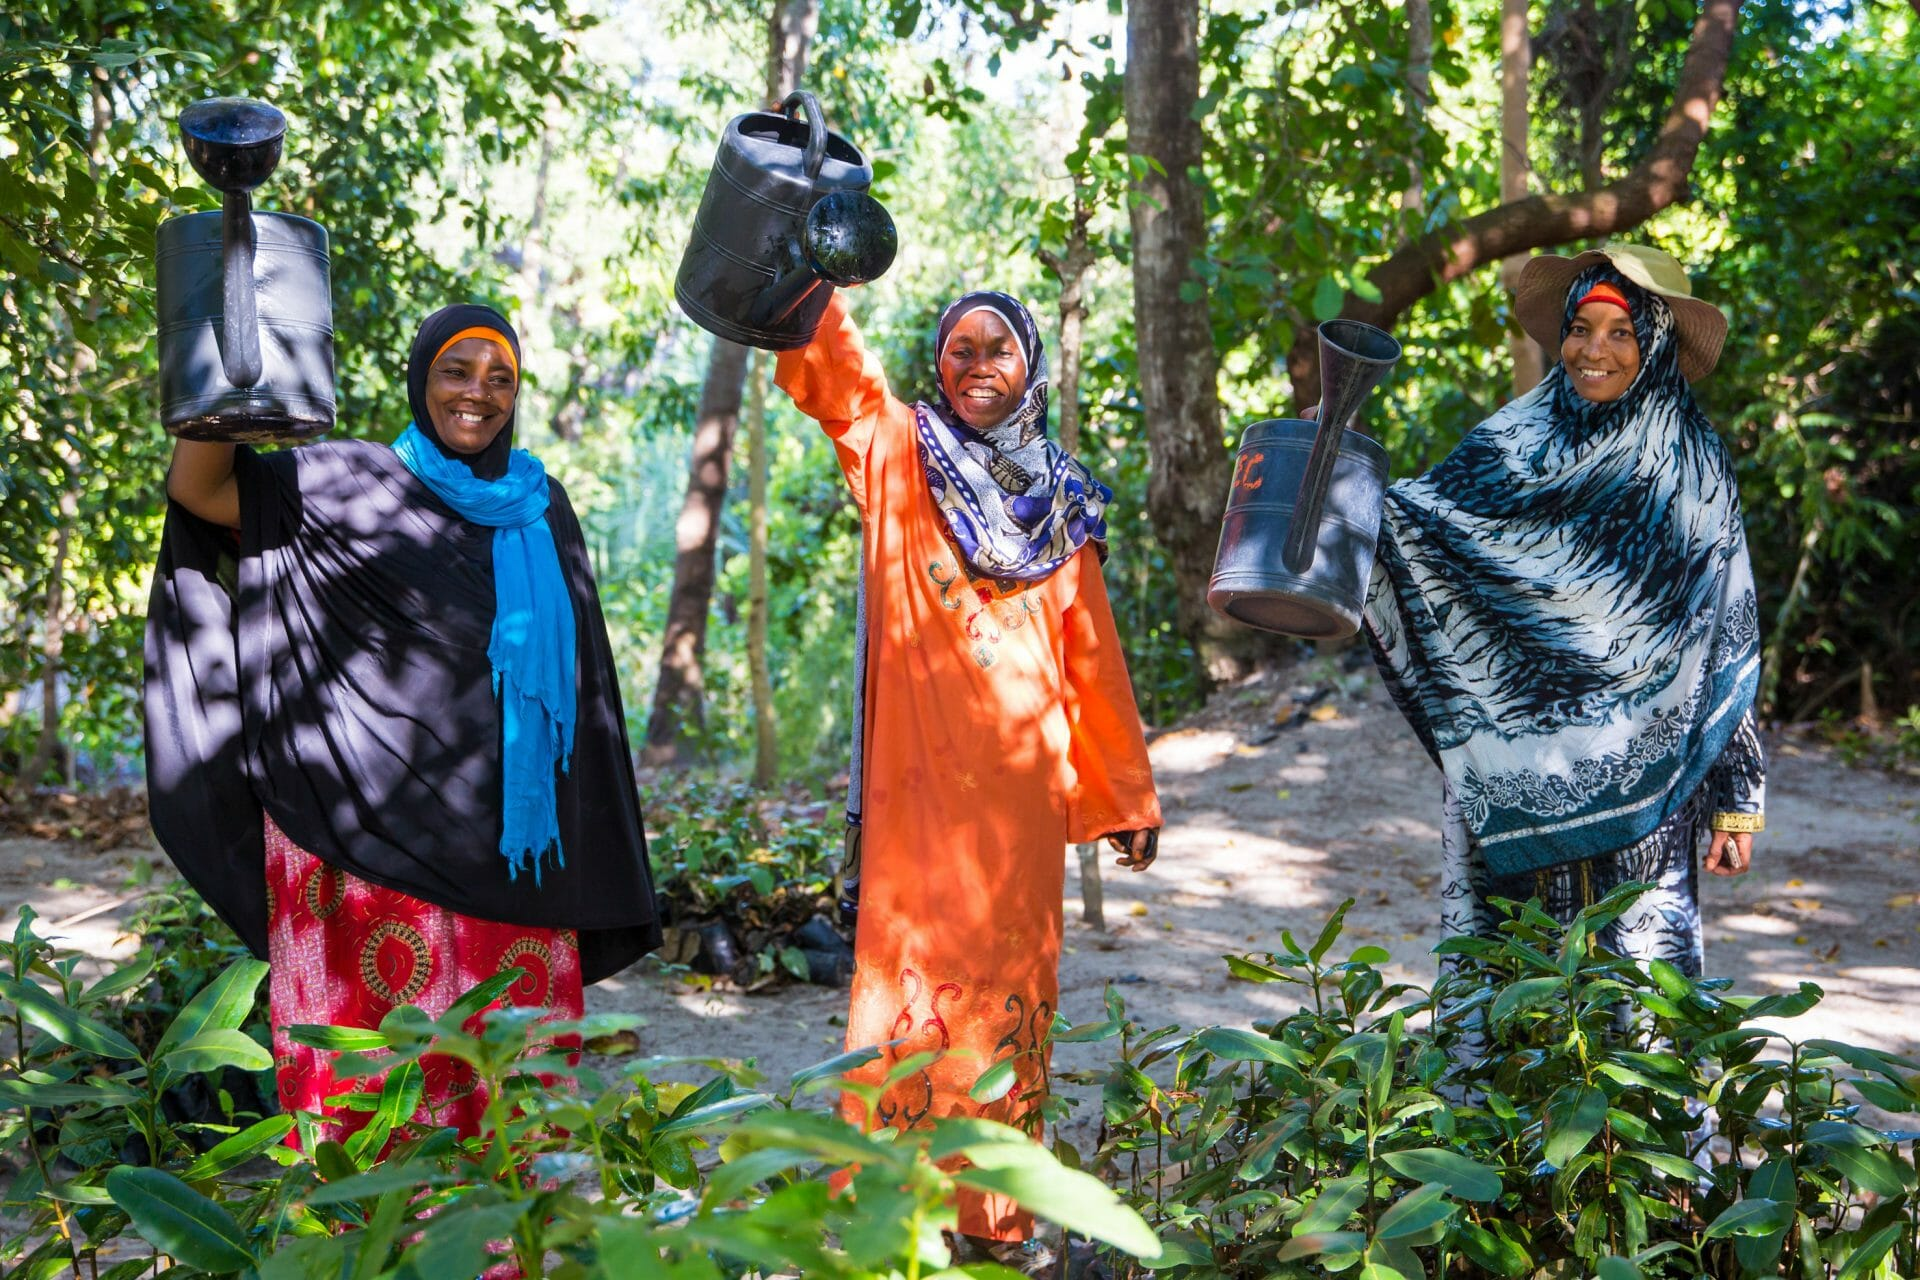 Three women wearing colourful dresses and scarves hold up their watering cans with enthusiasm. They are standing in a forest and tending to young tree seedlings.